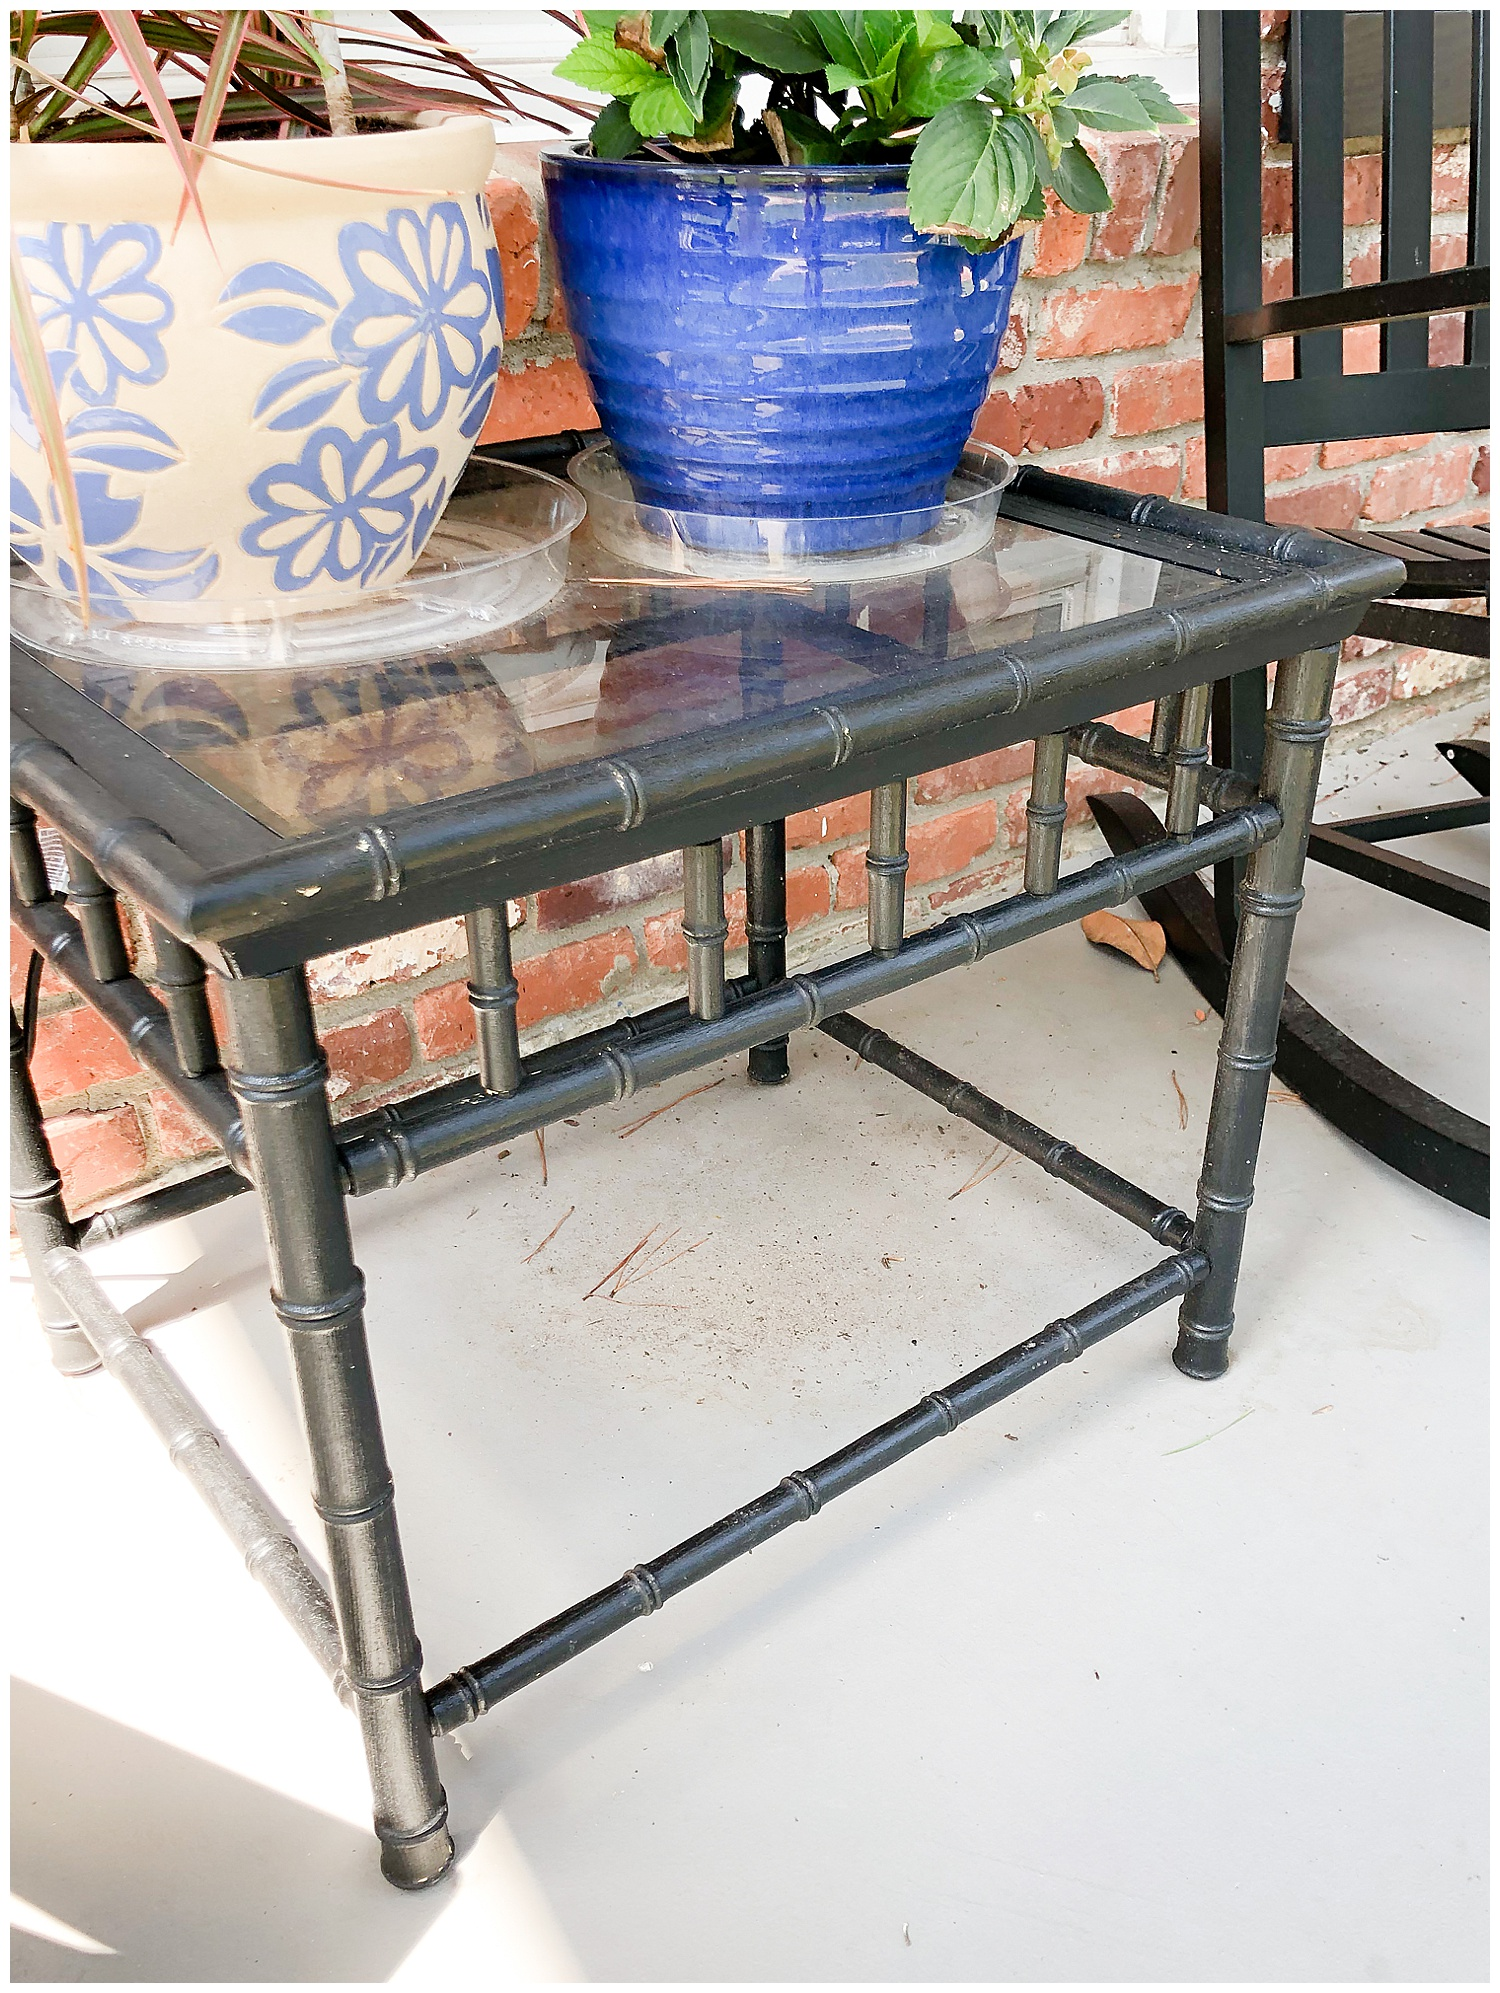 2 BAMBOO SIDE TABLES: $10 (WE PAINTED BLACK)